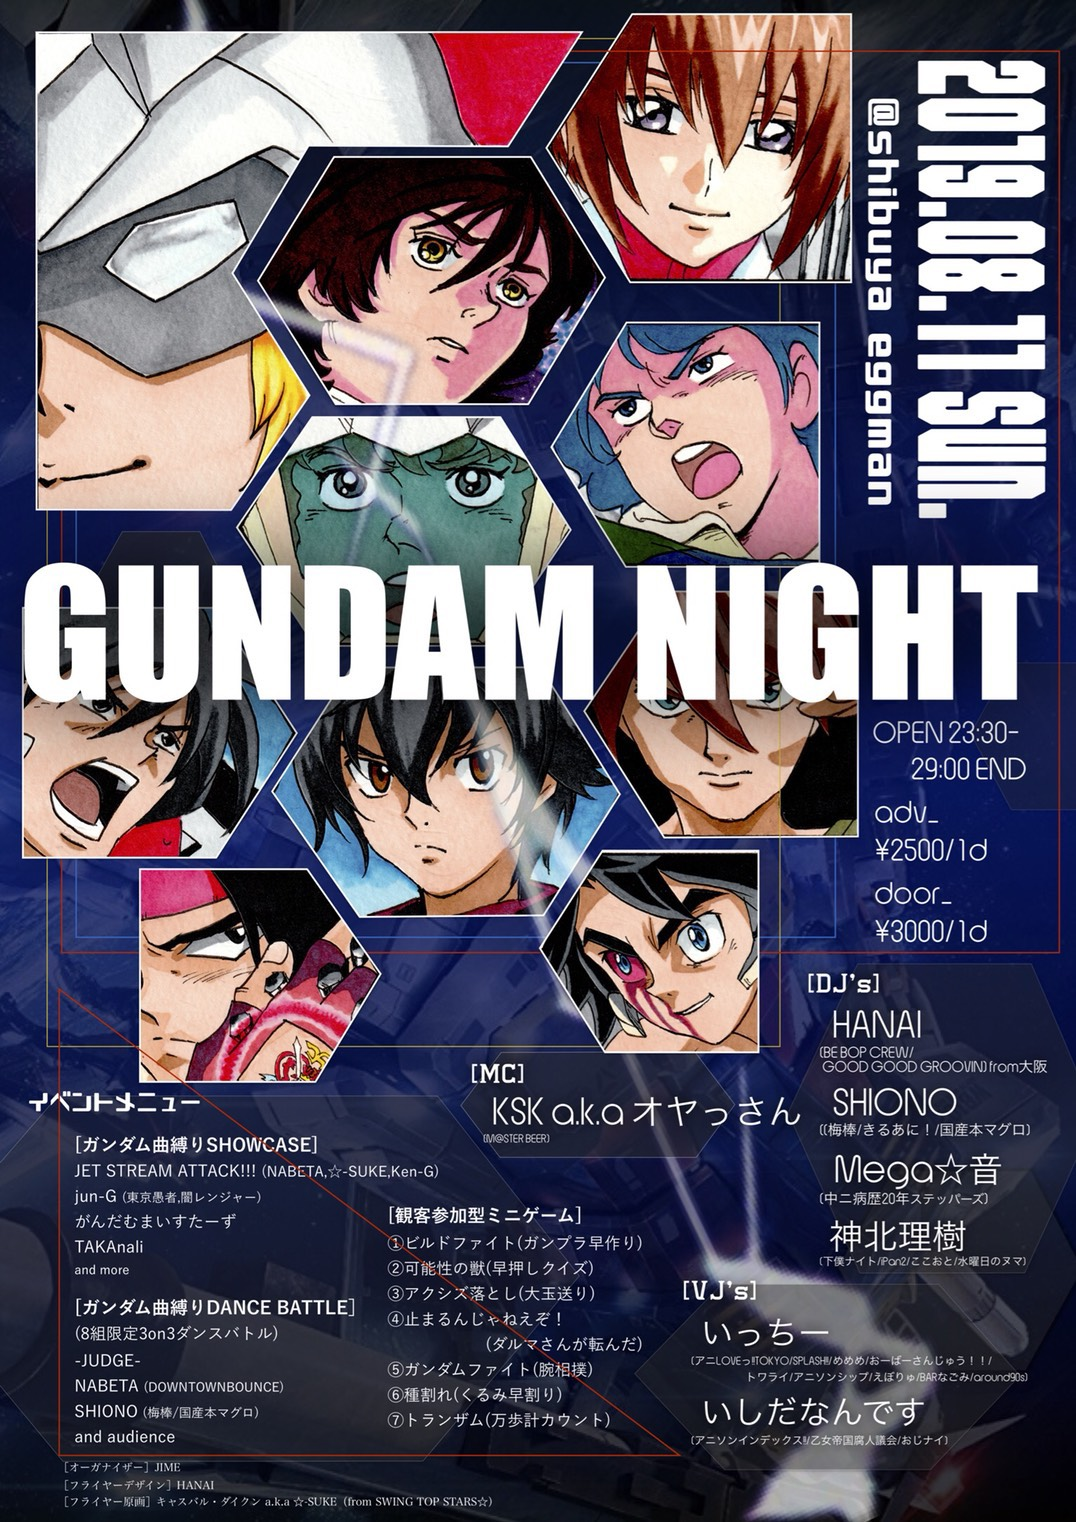 GUNDAM NIGHT